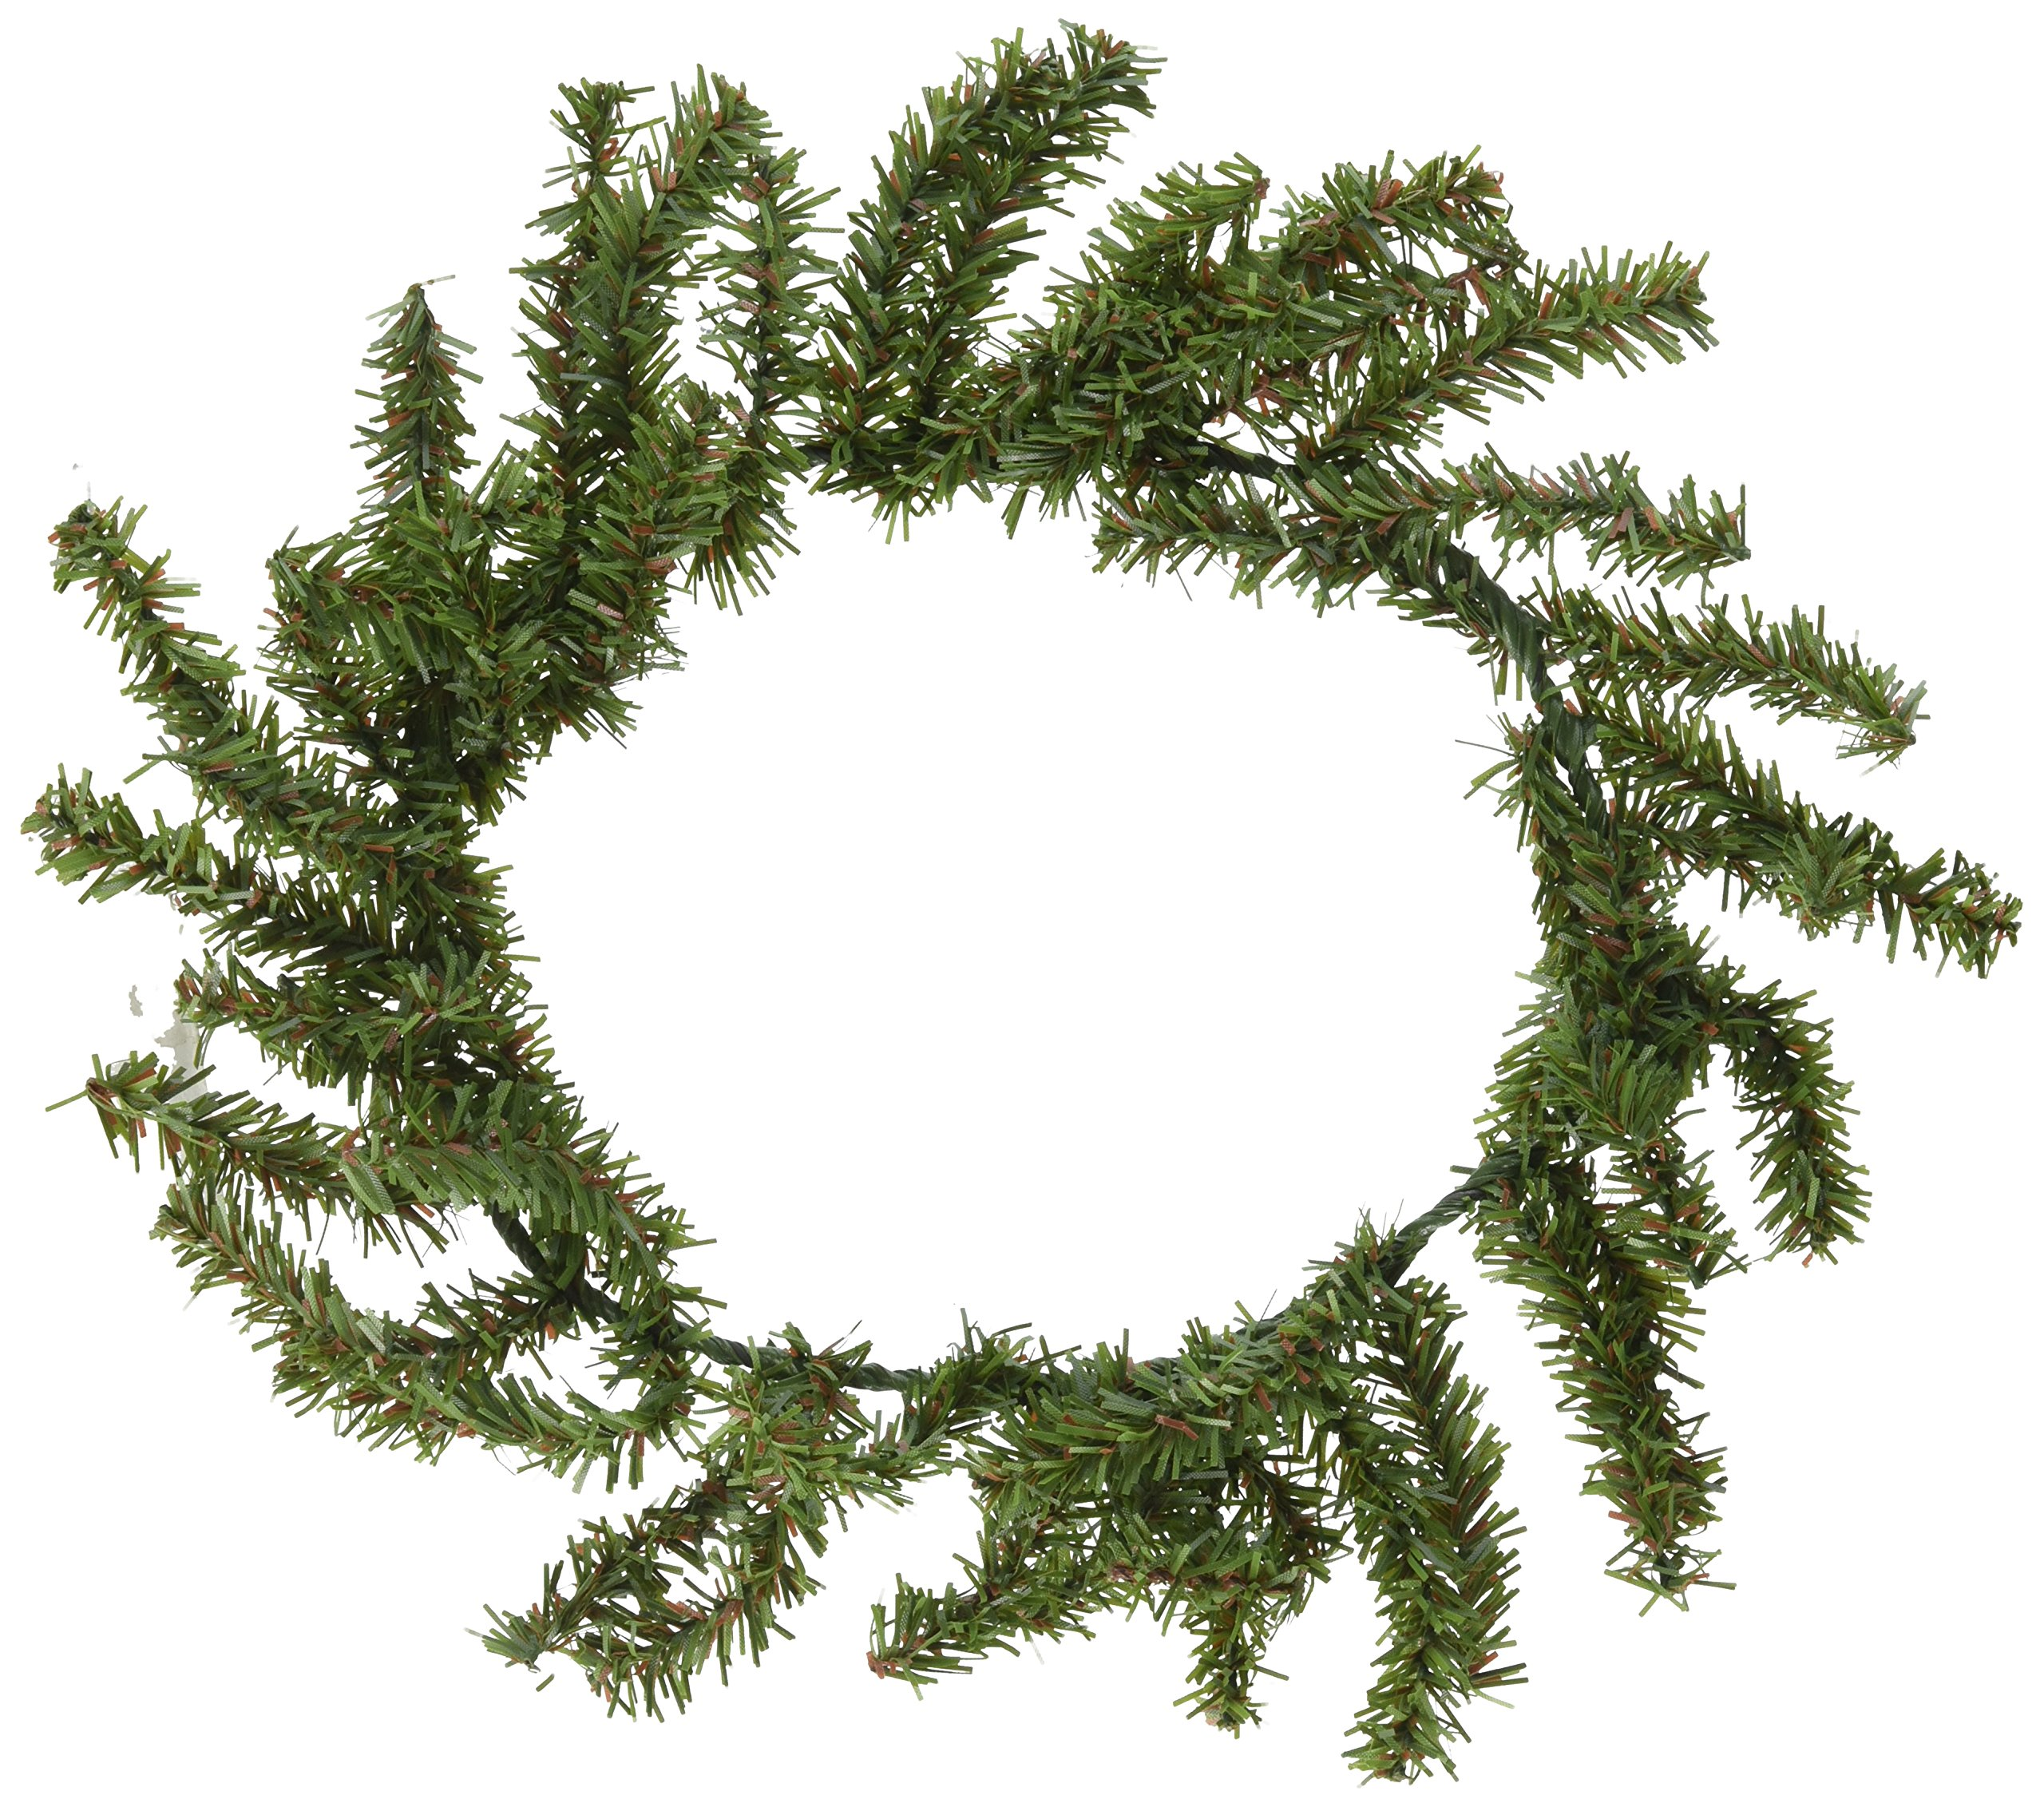 Canadian Pine Wreath - 60 Tips - Green - 10 inches (1 pack)